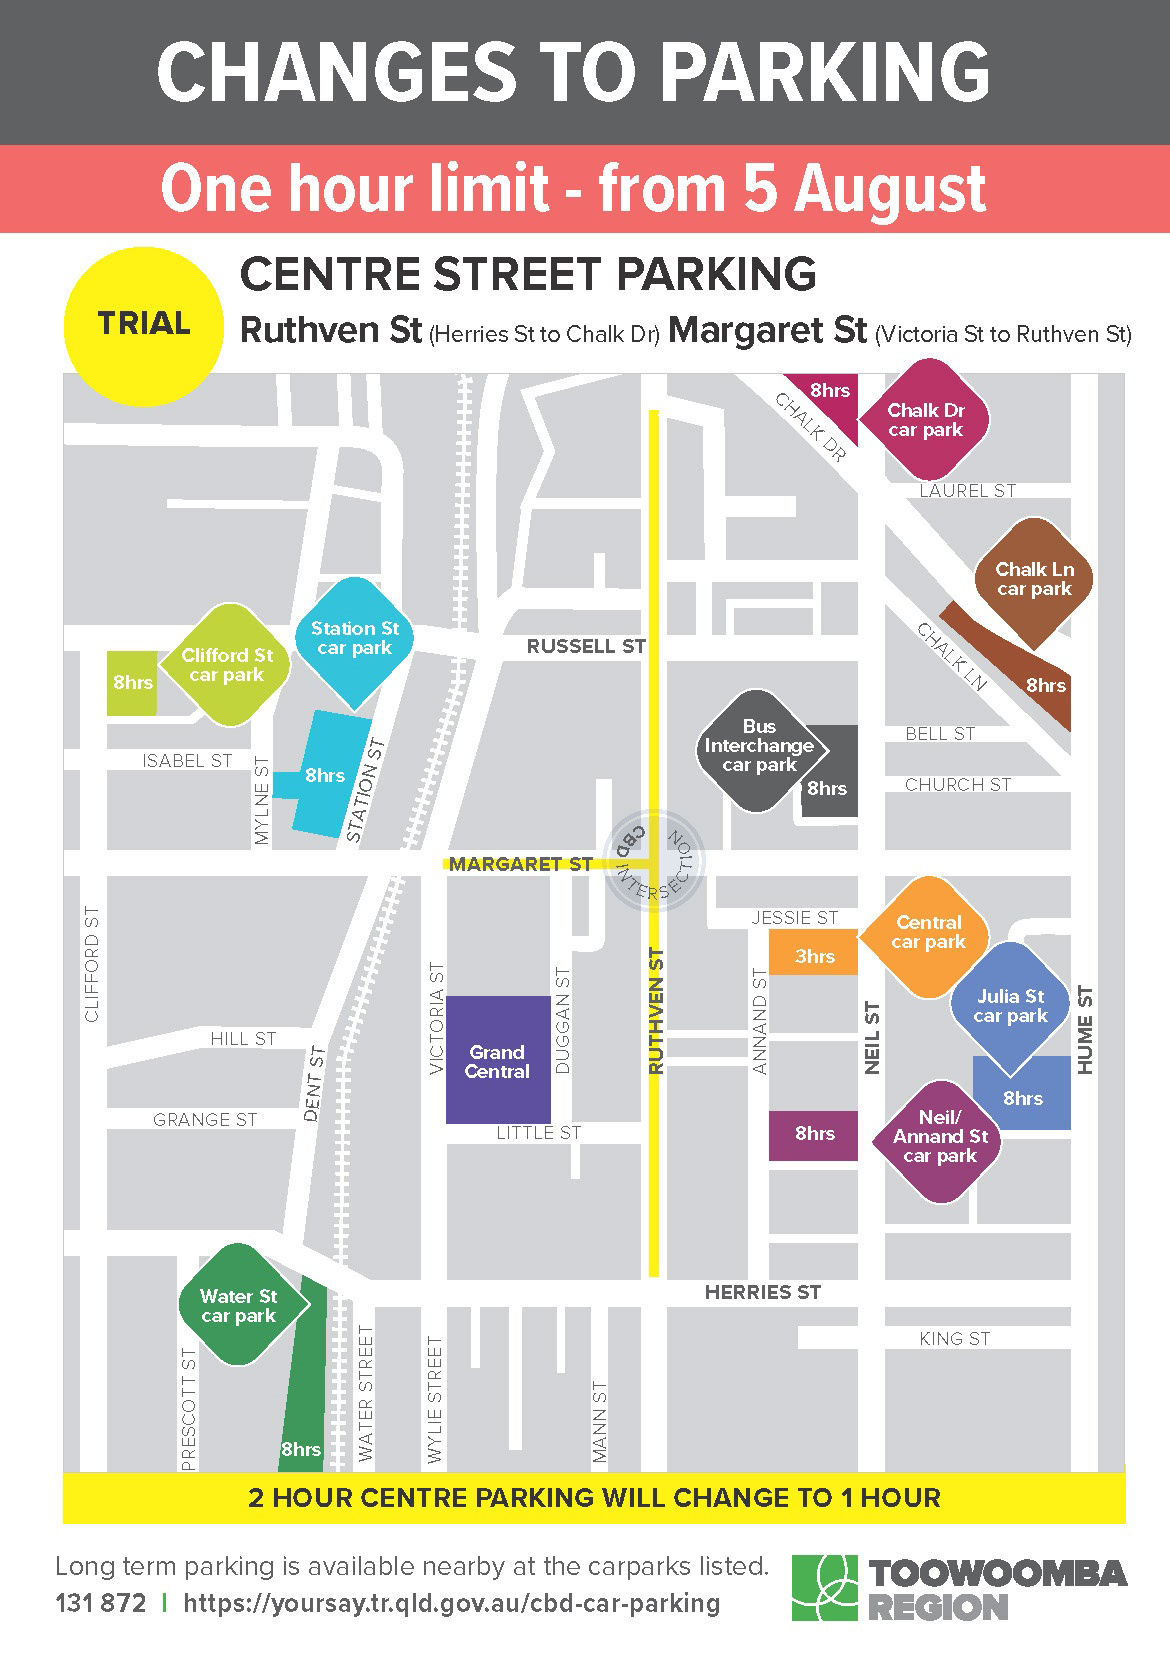 Parking fees, maps & permits for Toowoomba CBD